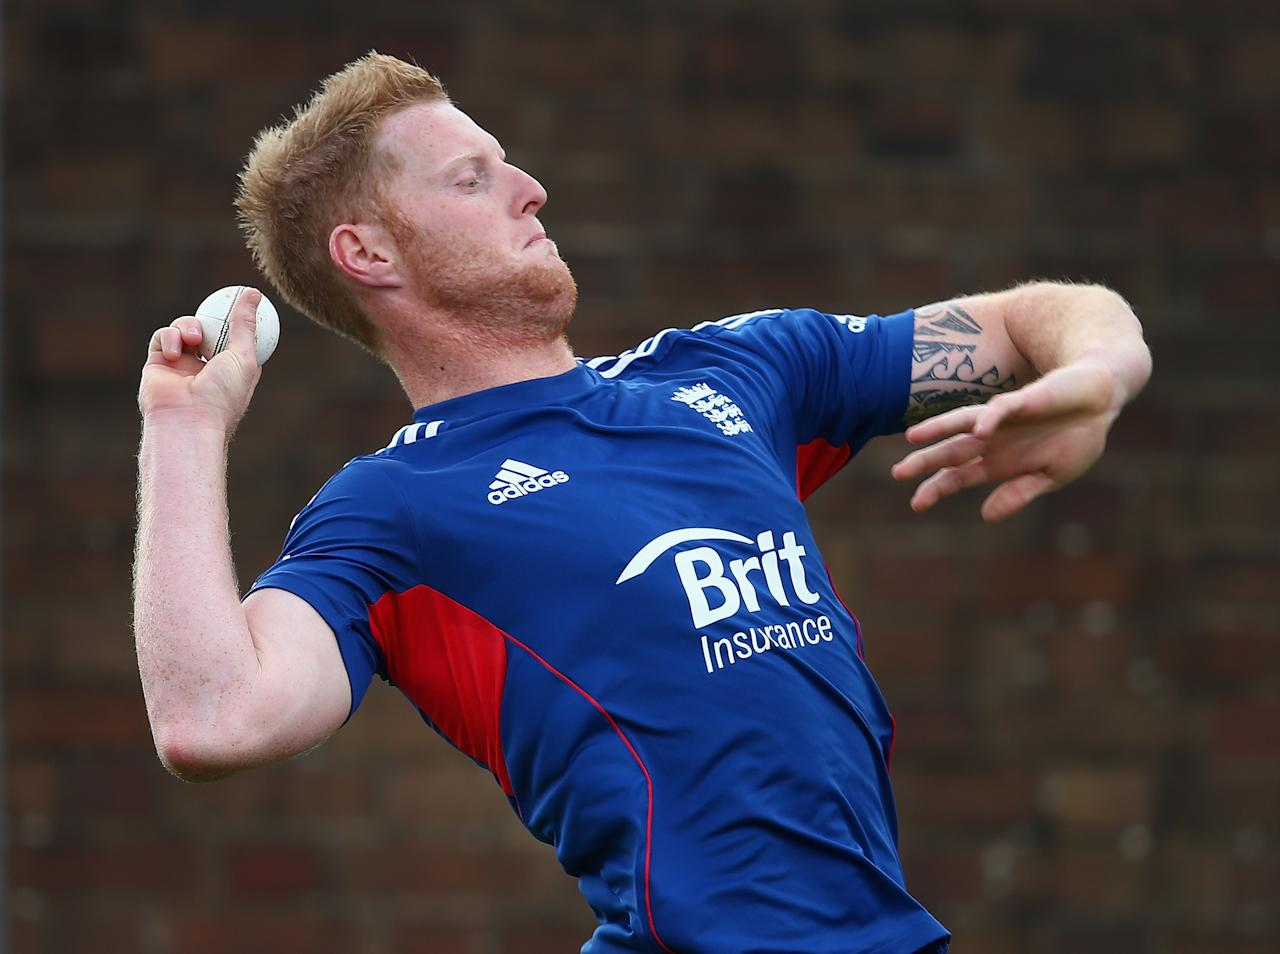 BIRMINGHAM, ENGLAND - SEPTEMBER 10:  Ben Stokes of England in action during a net session ahead of the third NatWest One Day International Series match between England and Australia at Edgbaston on September 10, 2013 in Birmingham, England.  (Photo by Clive Mason/Getty Images)